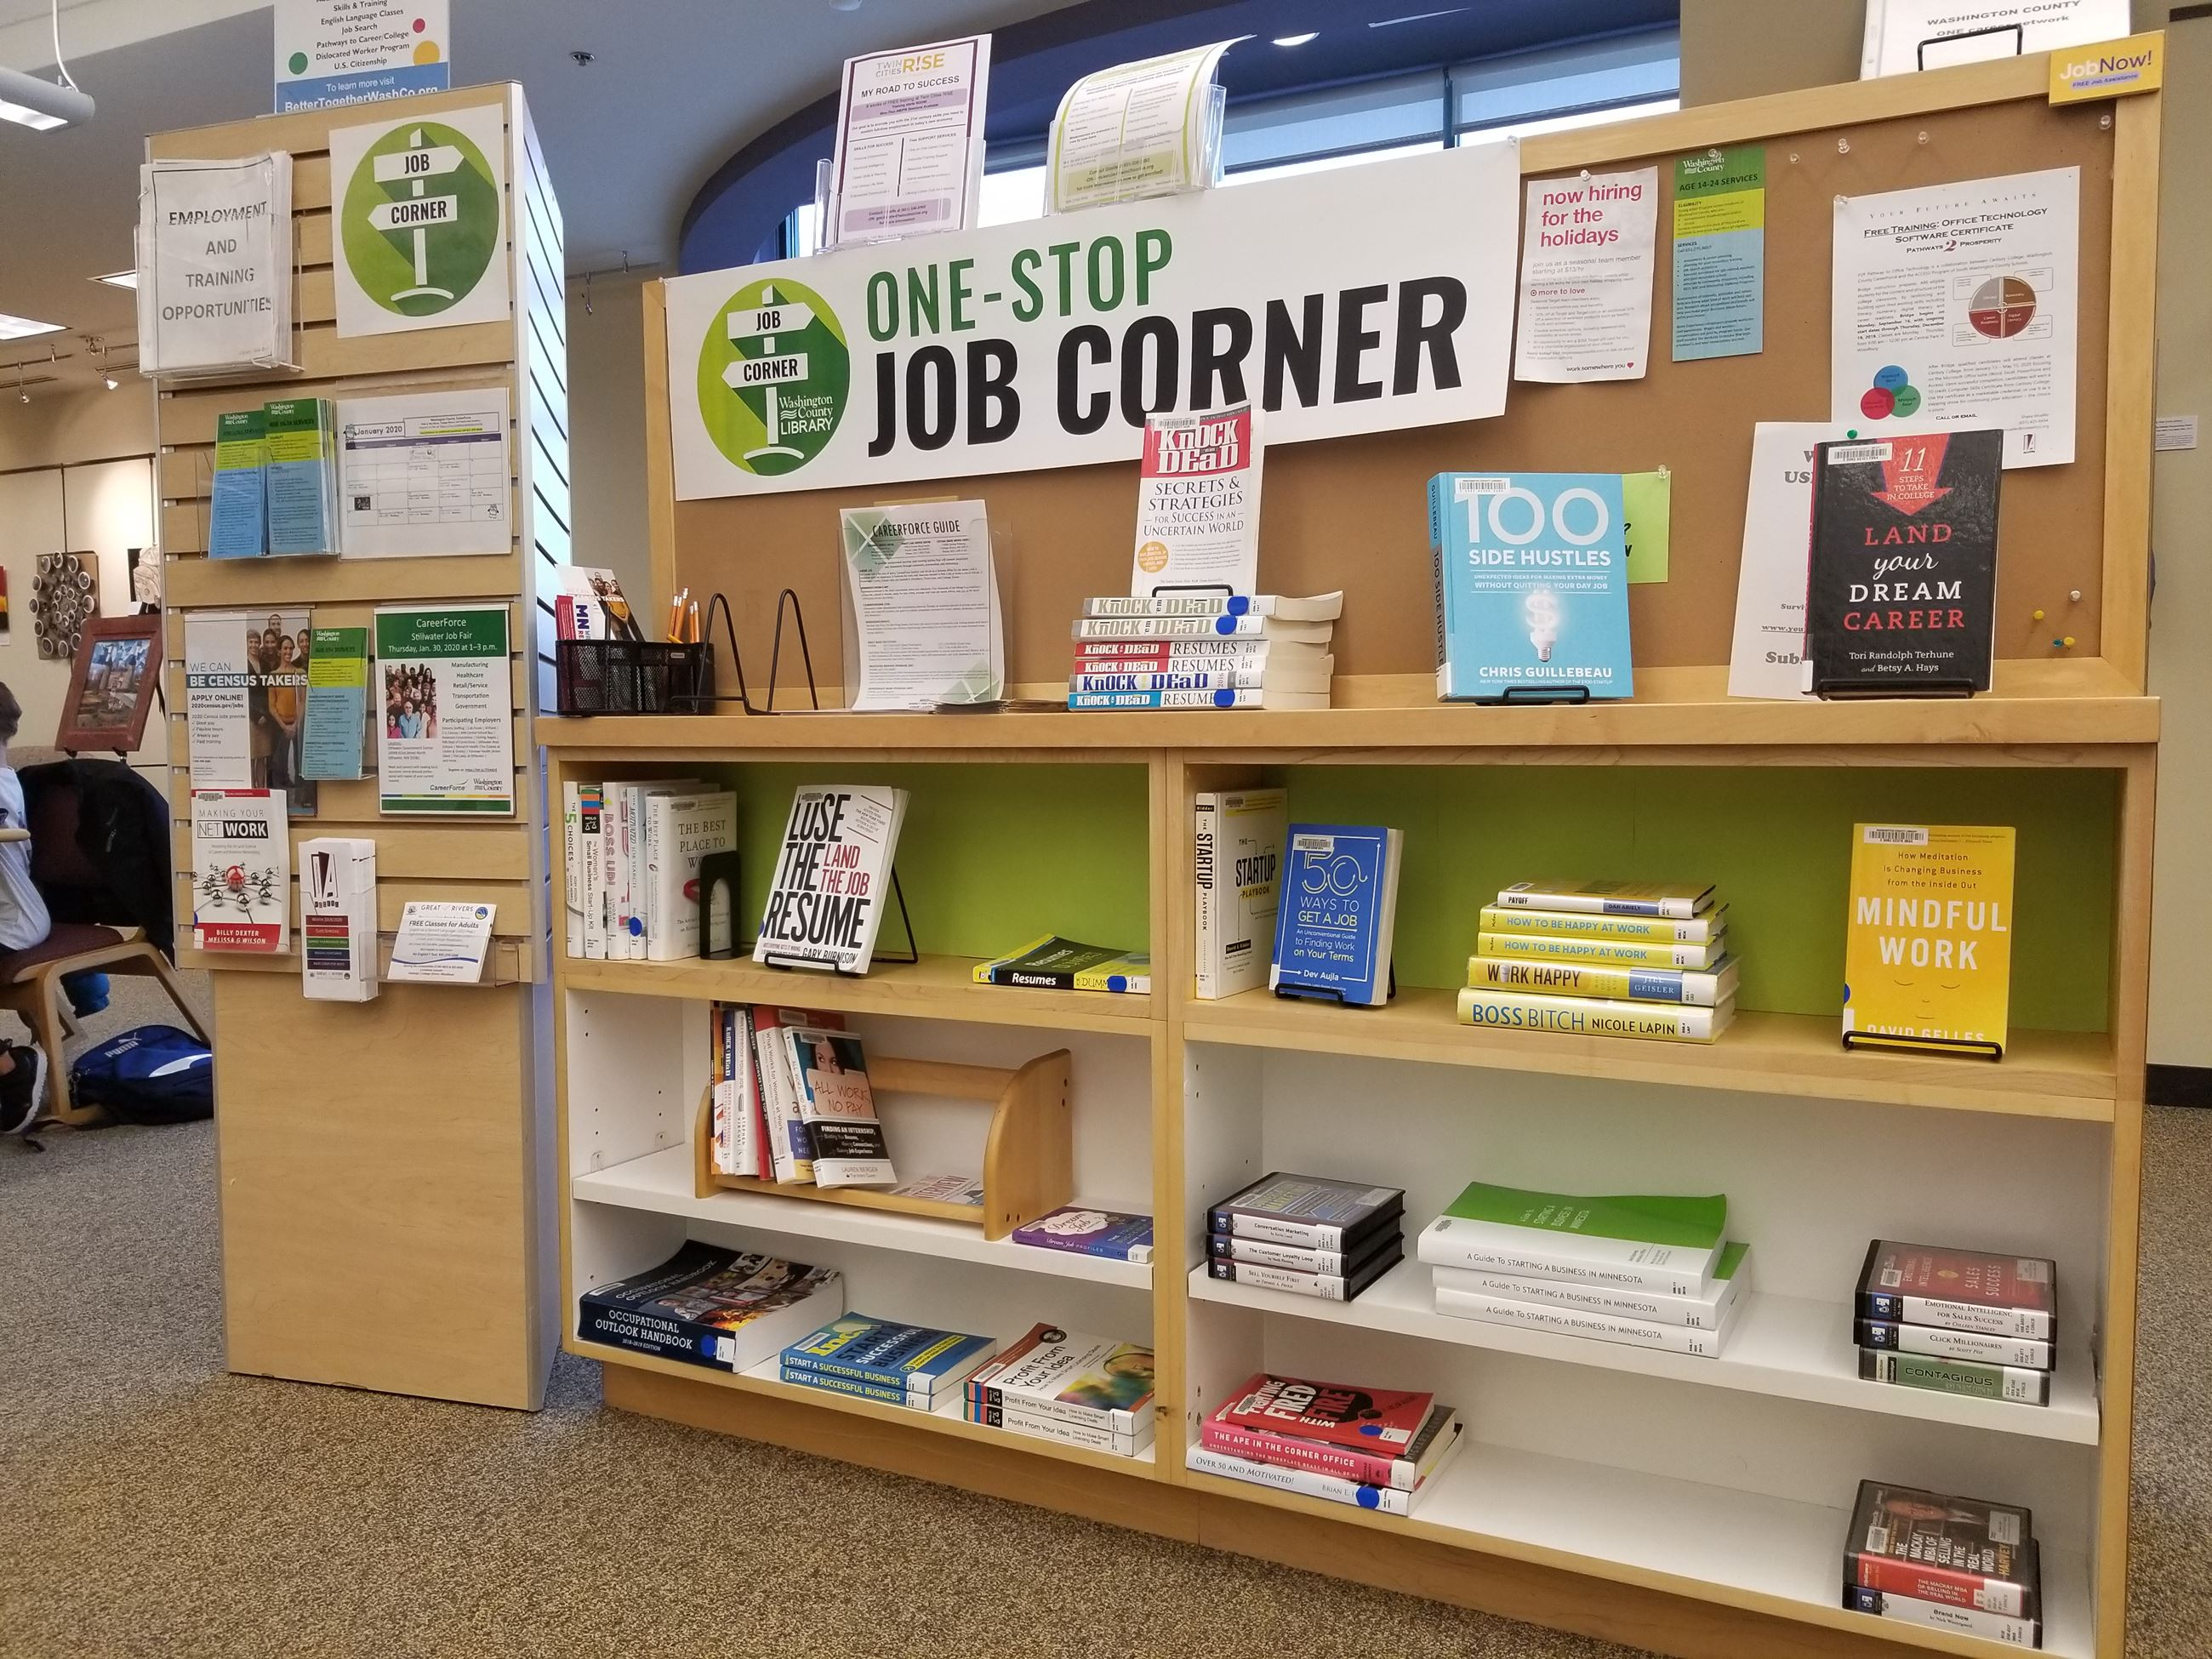 Career corner at R. H. Stafford Library